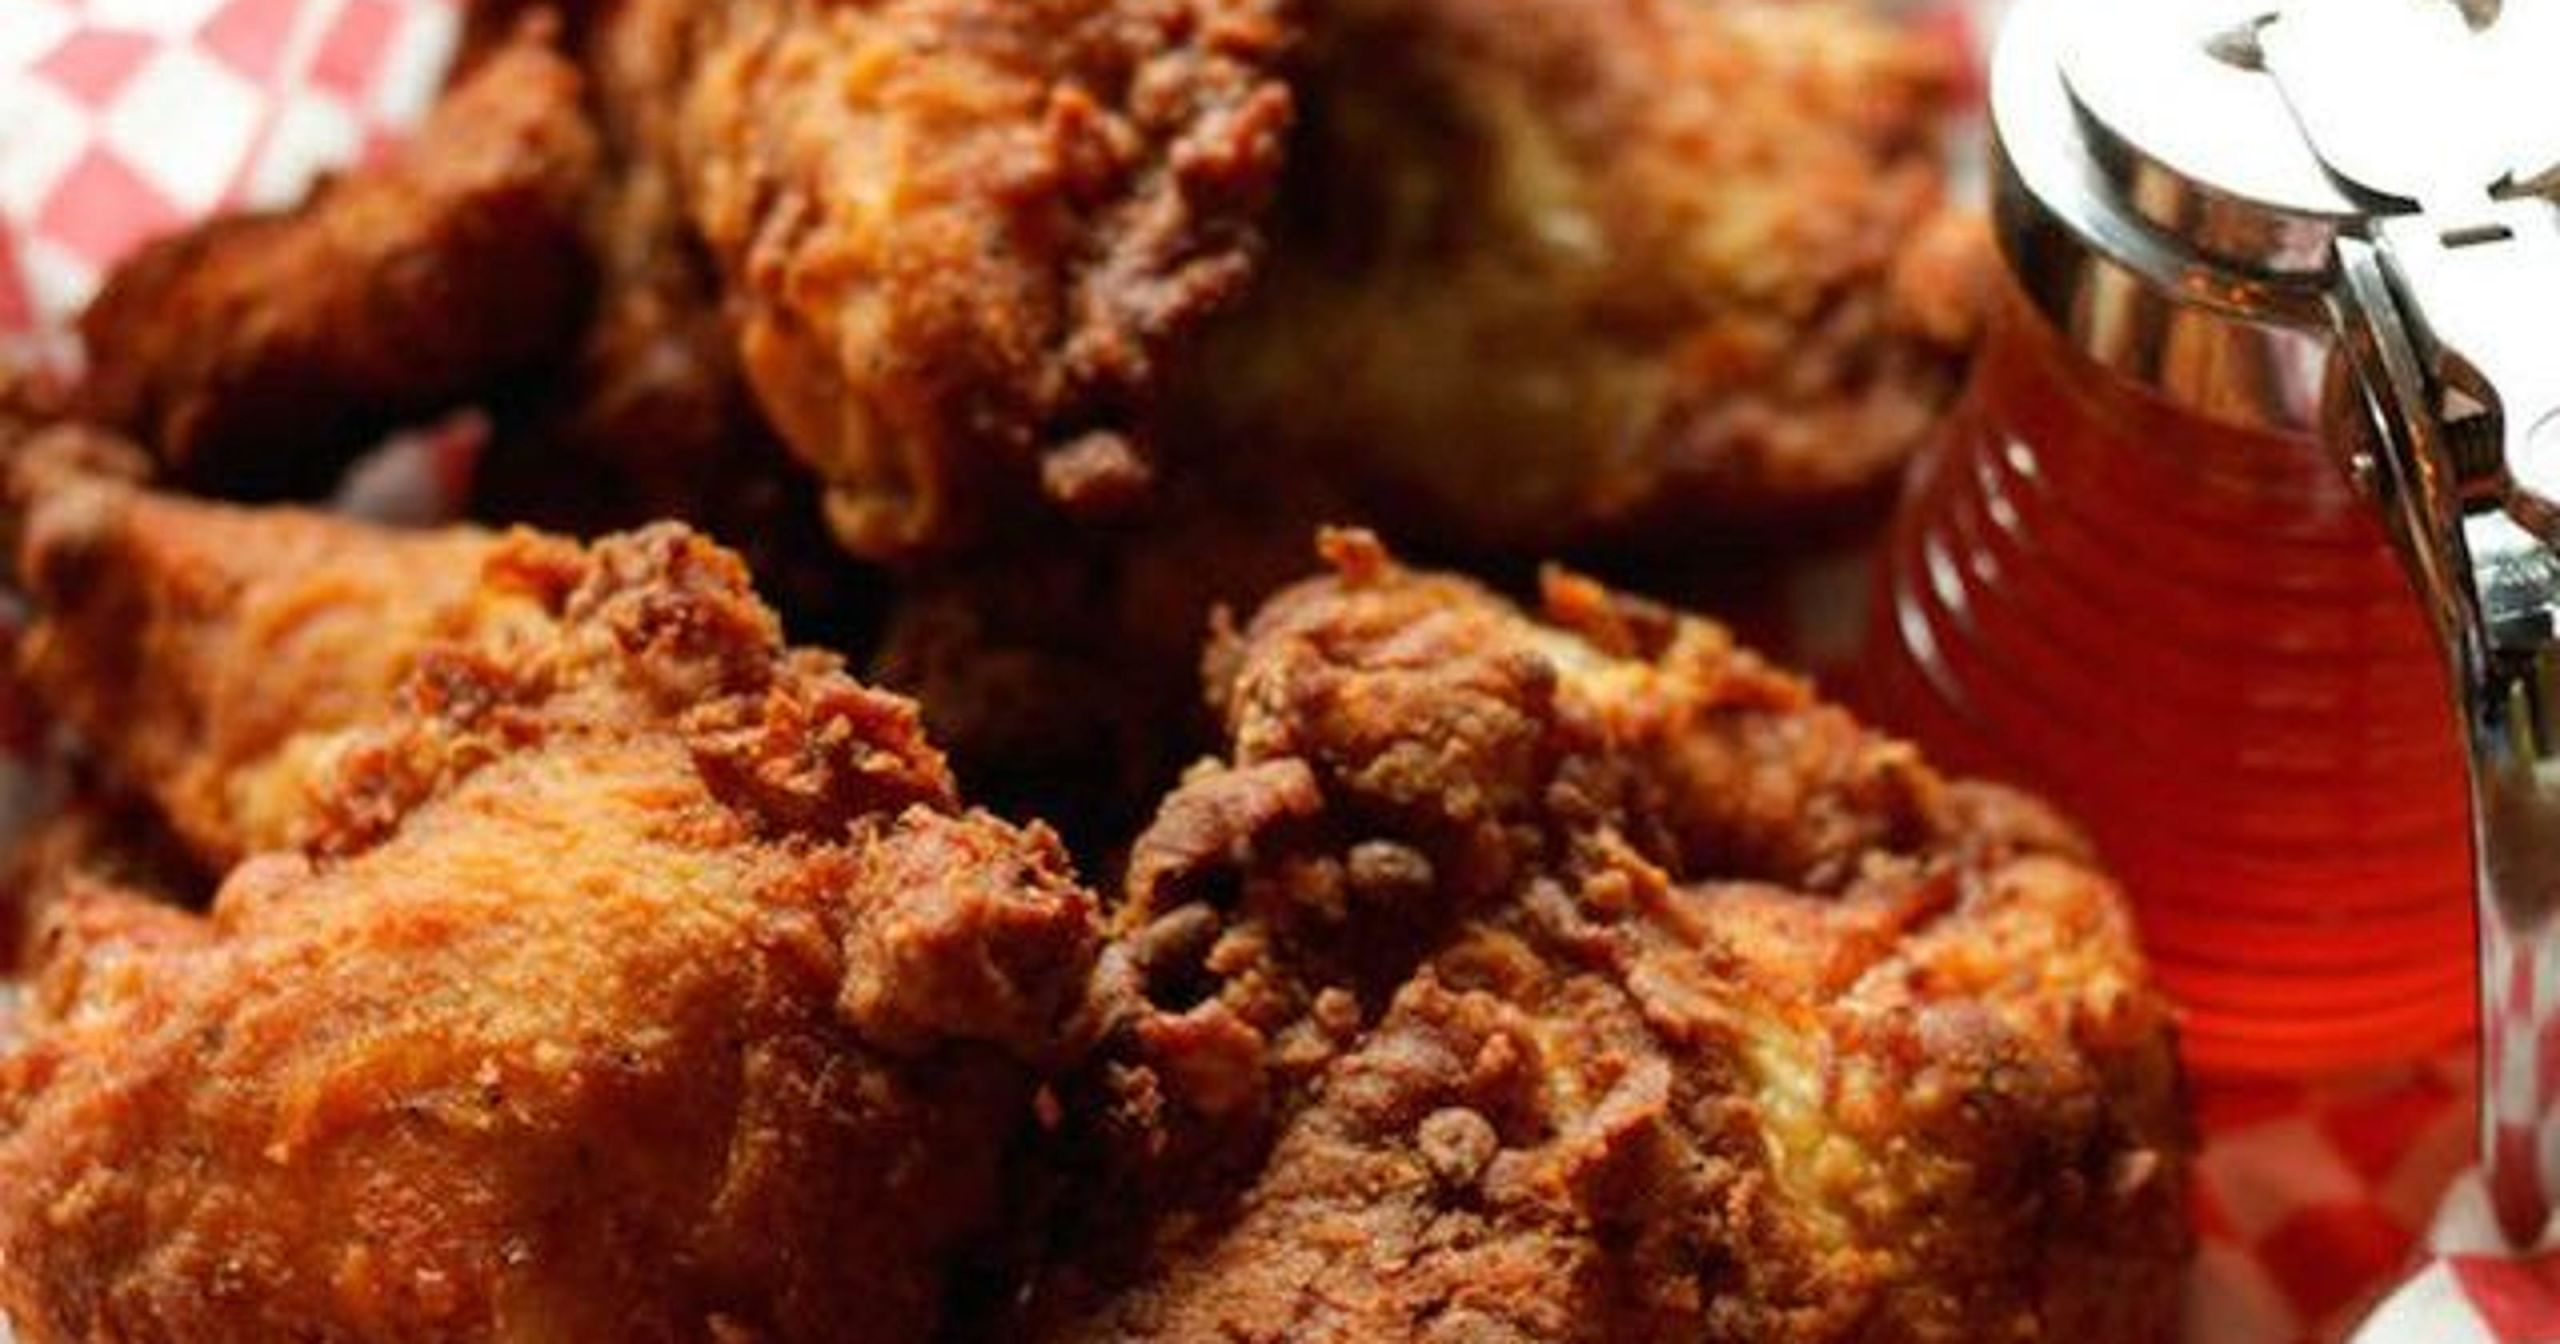 Best Fried Chicken In Indianapolis  New fried chicken restaurants in Indianapolis